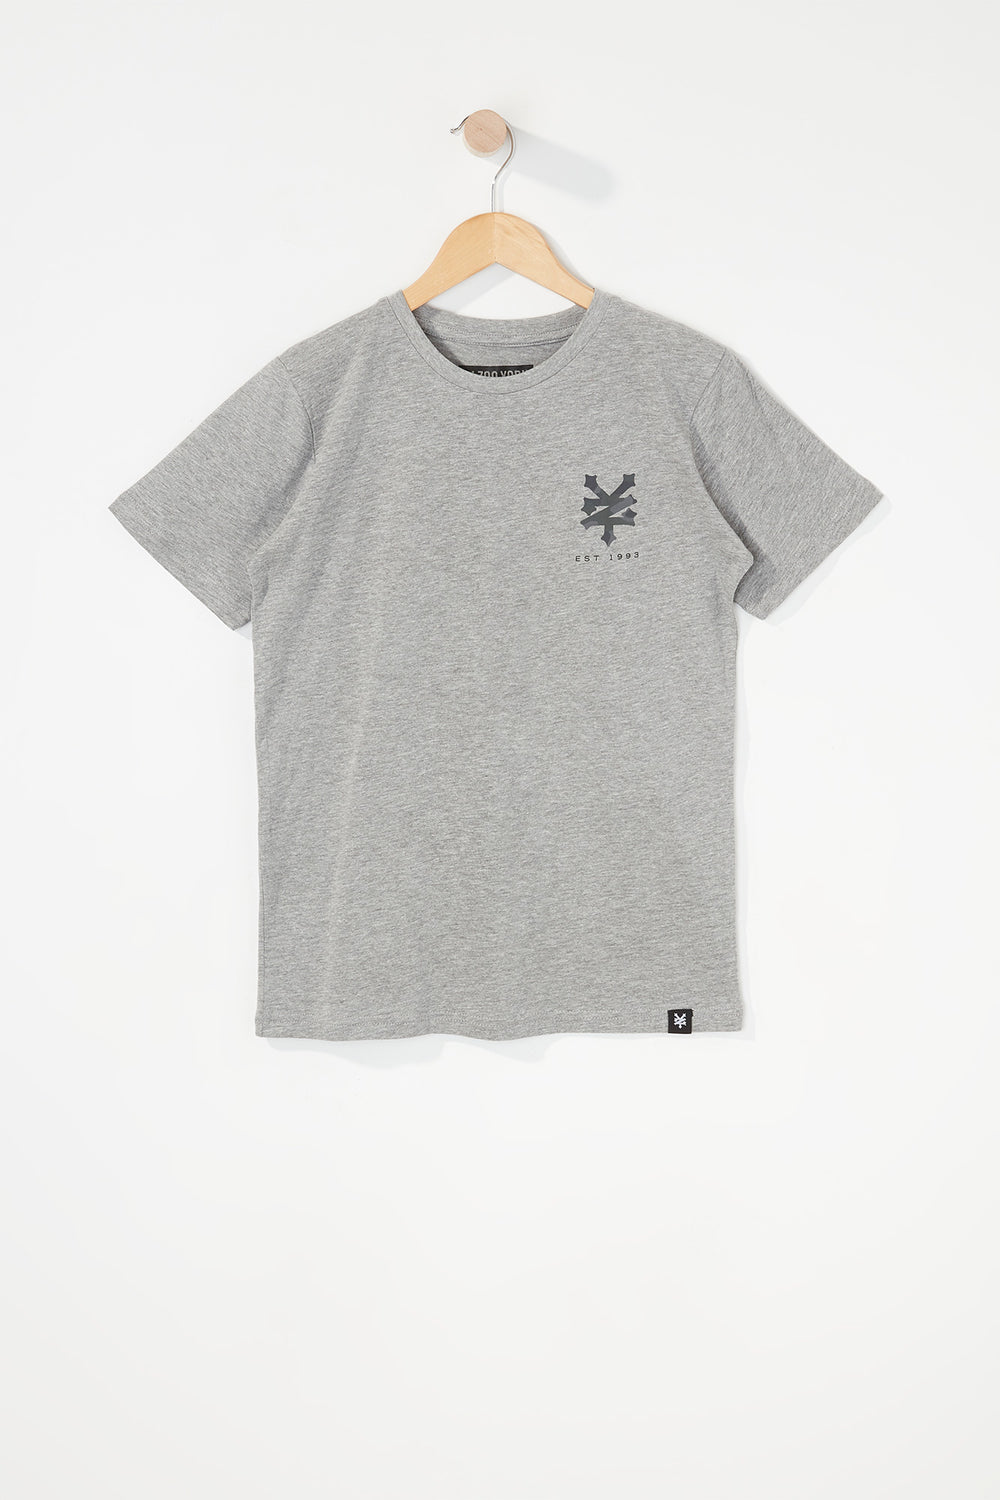 Zoo York Boys Camo Logo T-Shirt Heather Grey